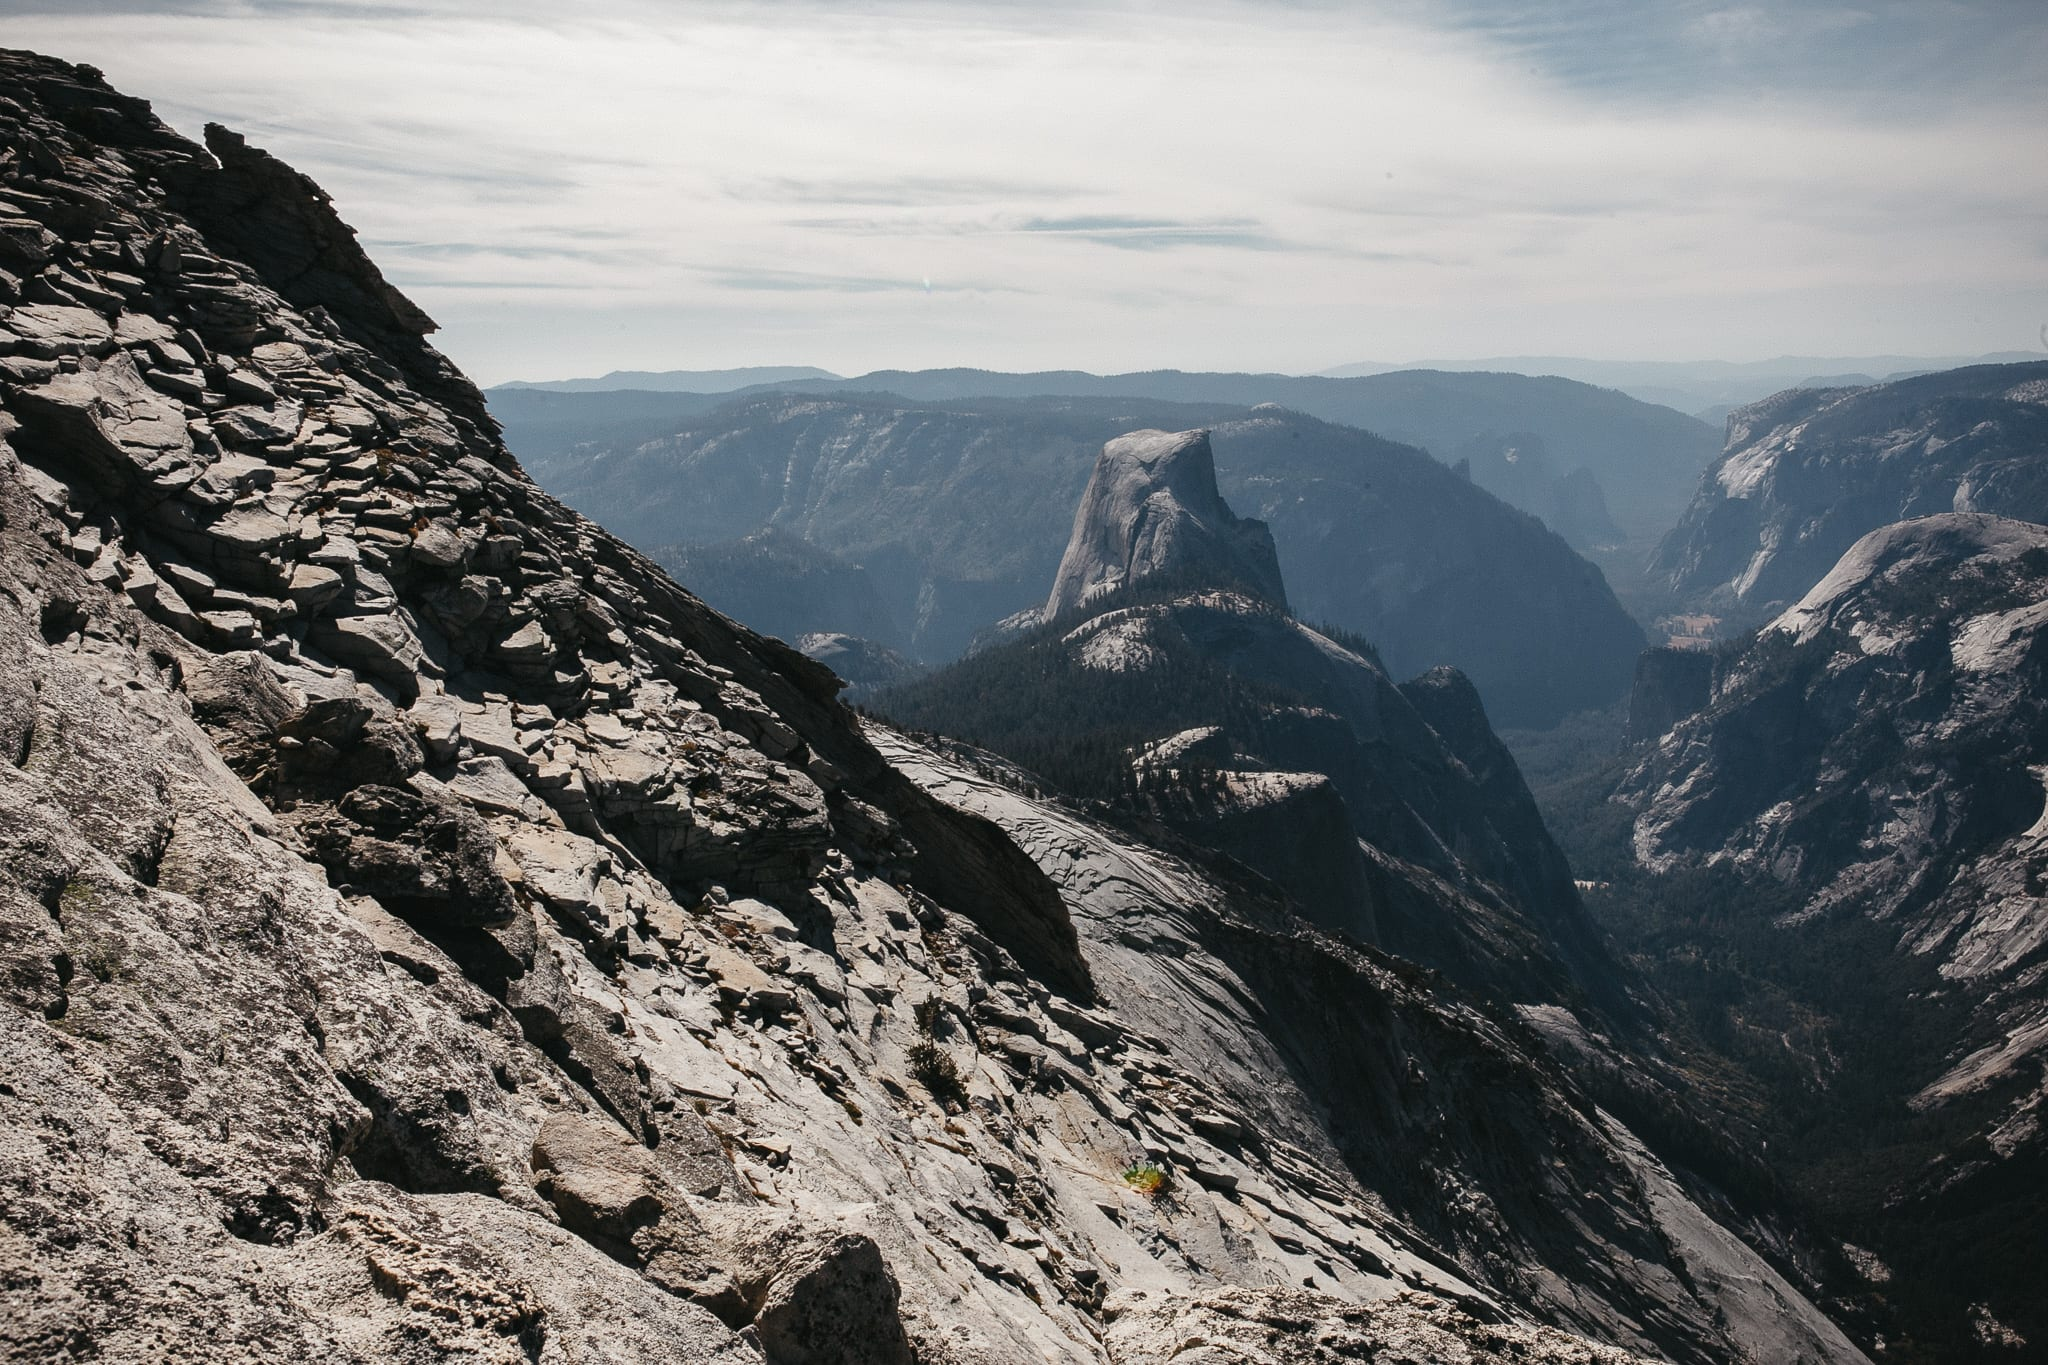 clouds-rest-yosemite-california-engagement-lifestyle-adventure-photographer-8